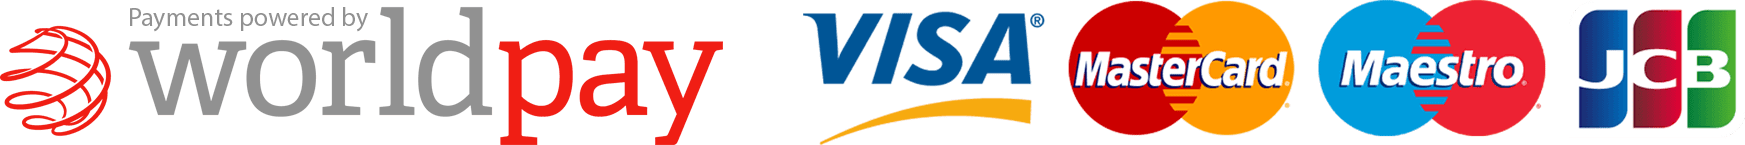 WorldPay Payments accepted with Visa, MasterCard, Maestro and JCB